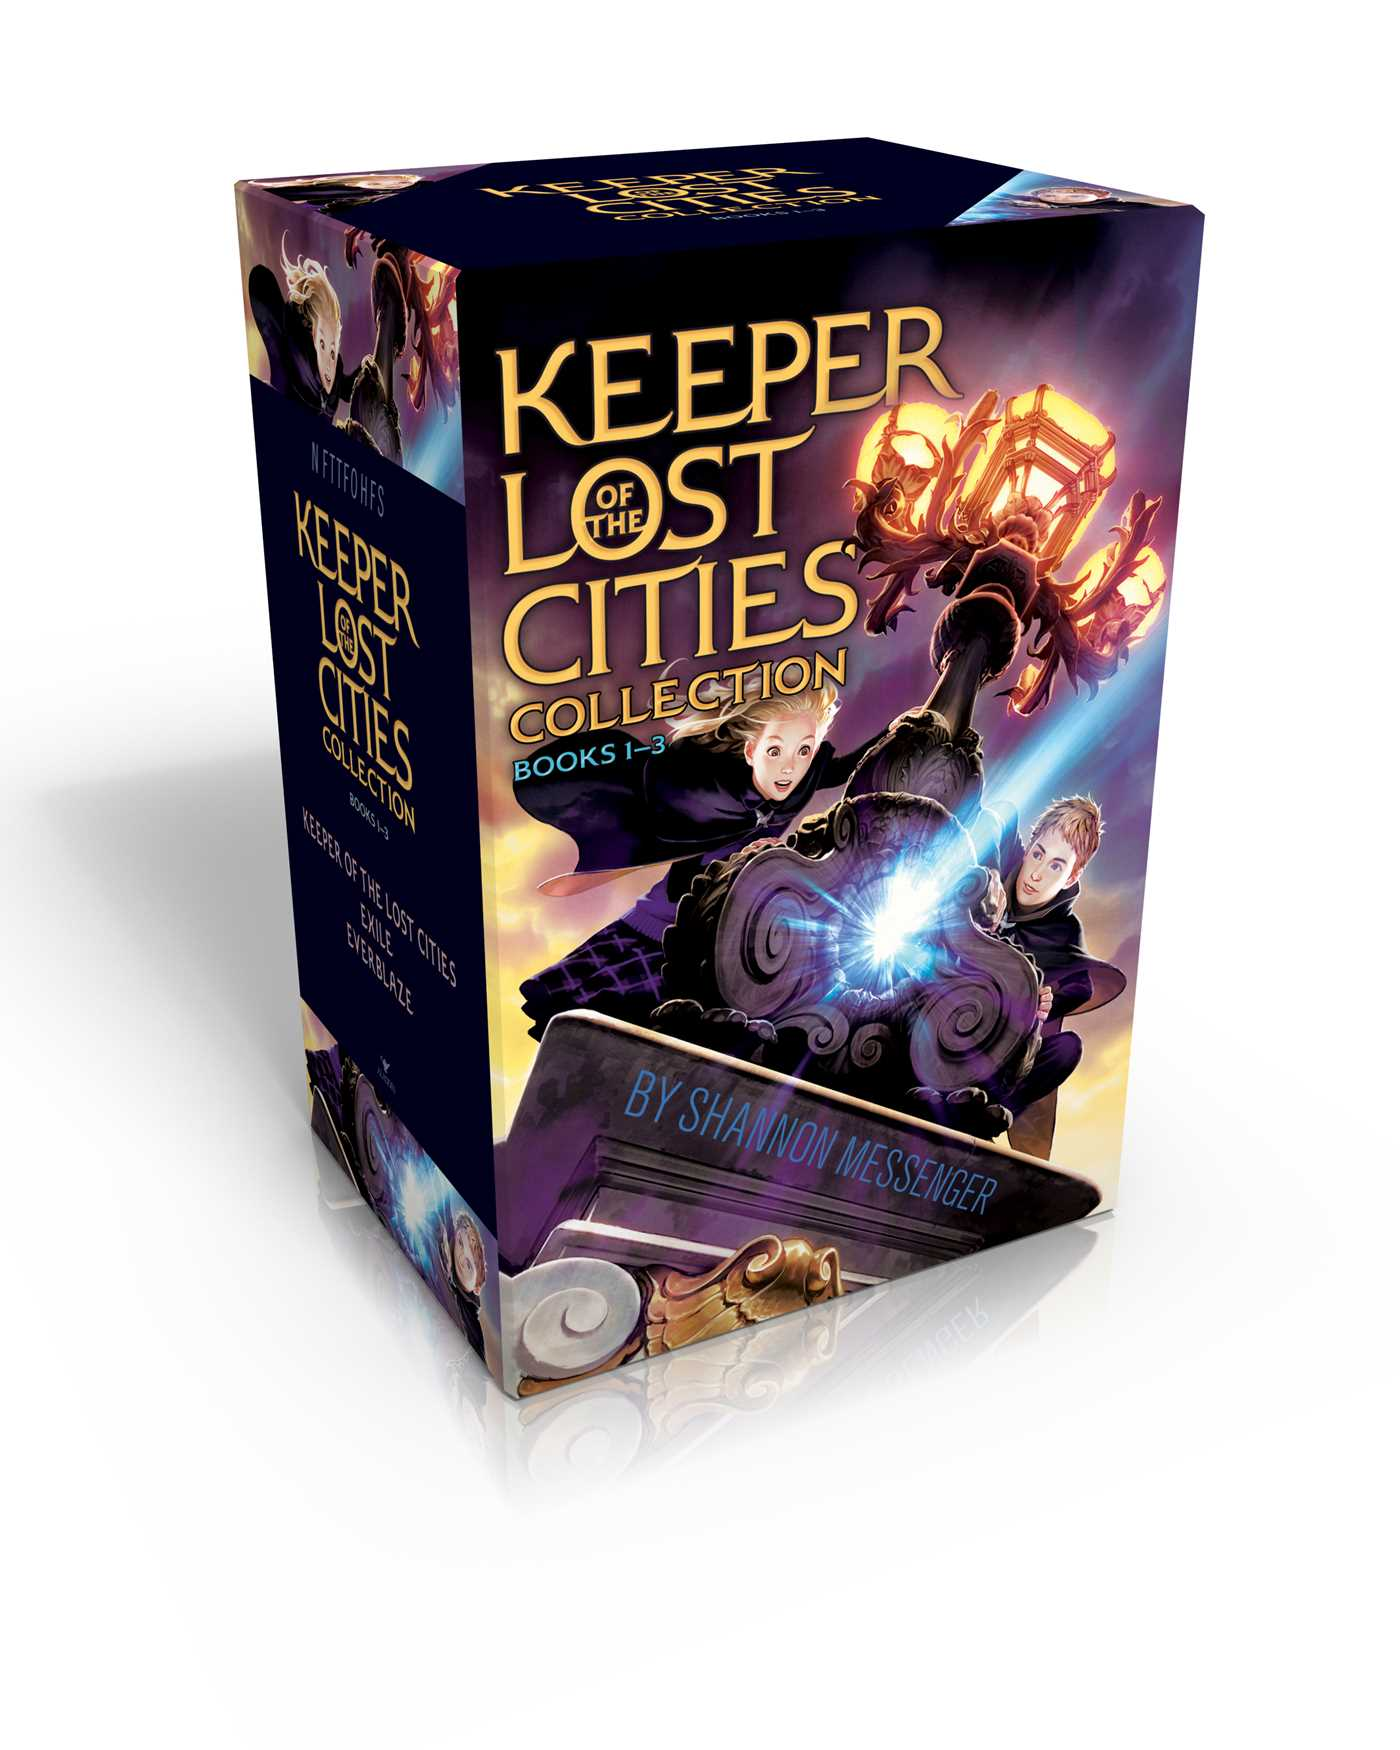 Keeper of the lost cities collection books 1 3 book by shannon